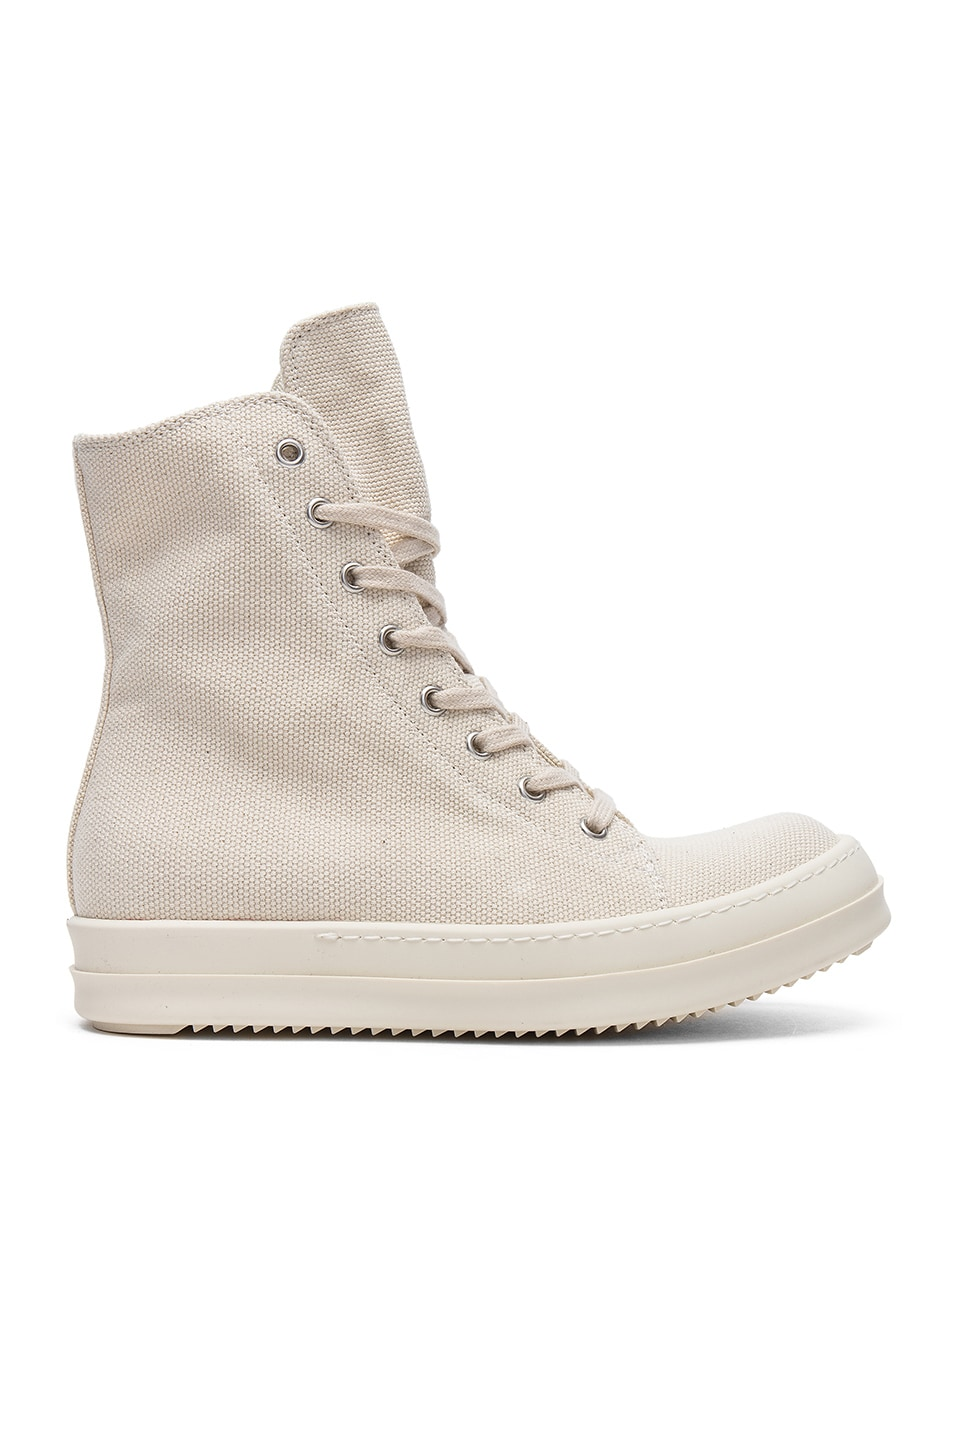 DRKSHDW by Rick Owens Vegan Sneakers in Cream